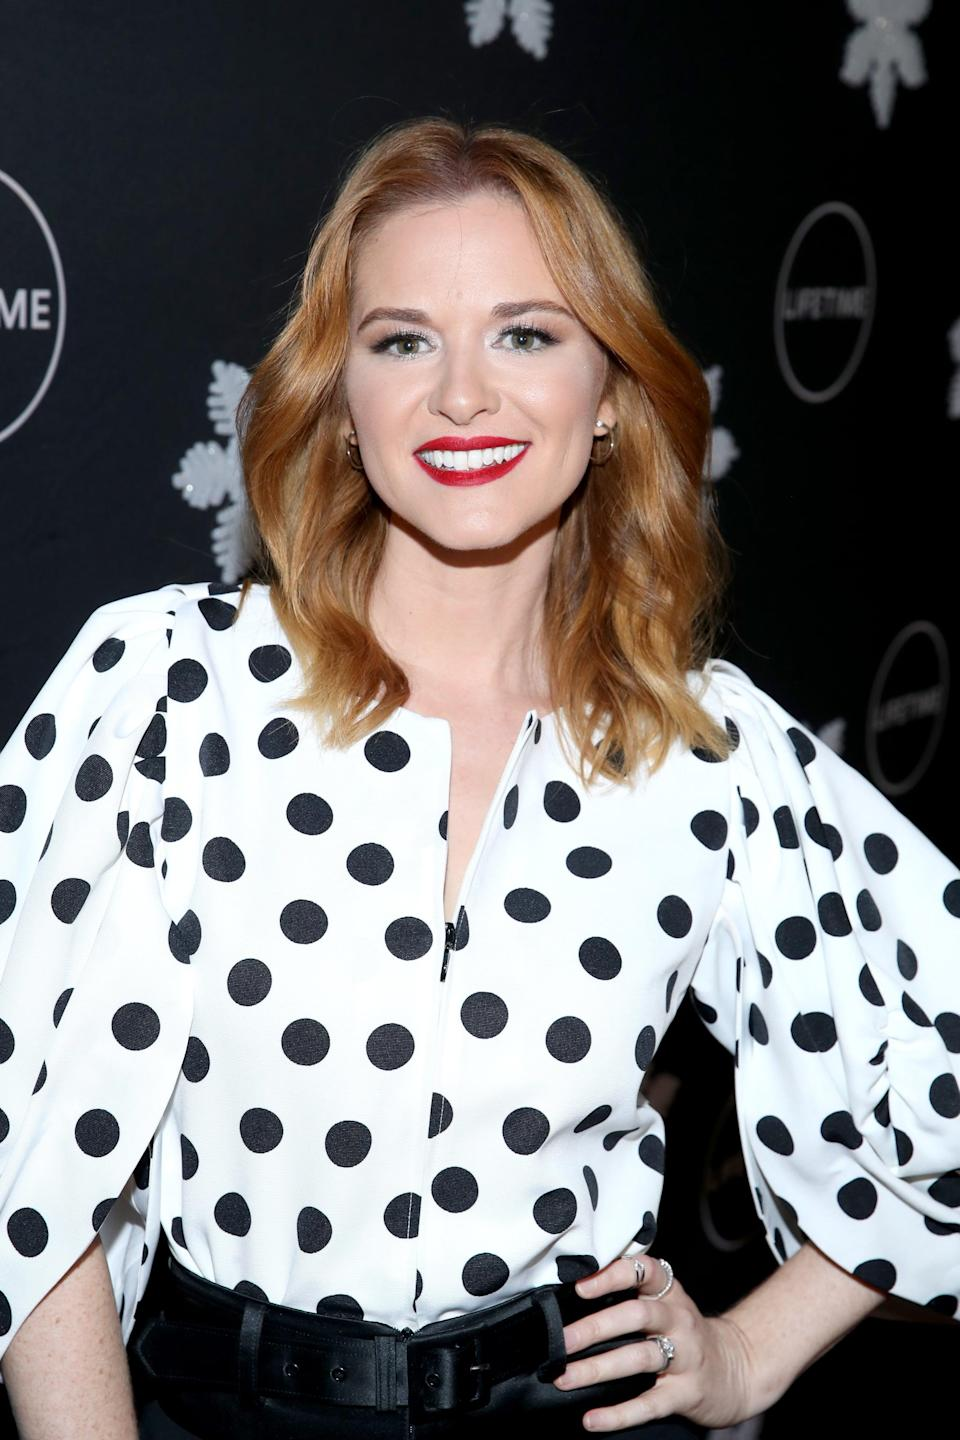 """<p>Sarah Drew isn't listed to be back on the show this year, and <a href=""""https://www.popsugar.com/entertainment/Sarah-Drew-Longer-Watches-Grey-Anatomy-45355850"""" class=""""link rapid-noclick-resp"""" rel=""""nofollow noopener"""" target=""""_blank"""" data-ylk=""""slk:her exit wasn't exactly amicable"""">her exit wasn't exactly amicable</a>, so it's highly unlikely that she'll be coming around this season. But with Jackson's mention of his custody arrangement for Harriet, it felt like it would lead to some kind of appearance! Maybe? Okay, probably not. </p>"""